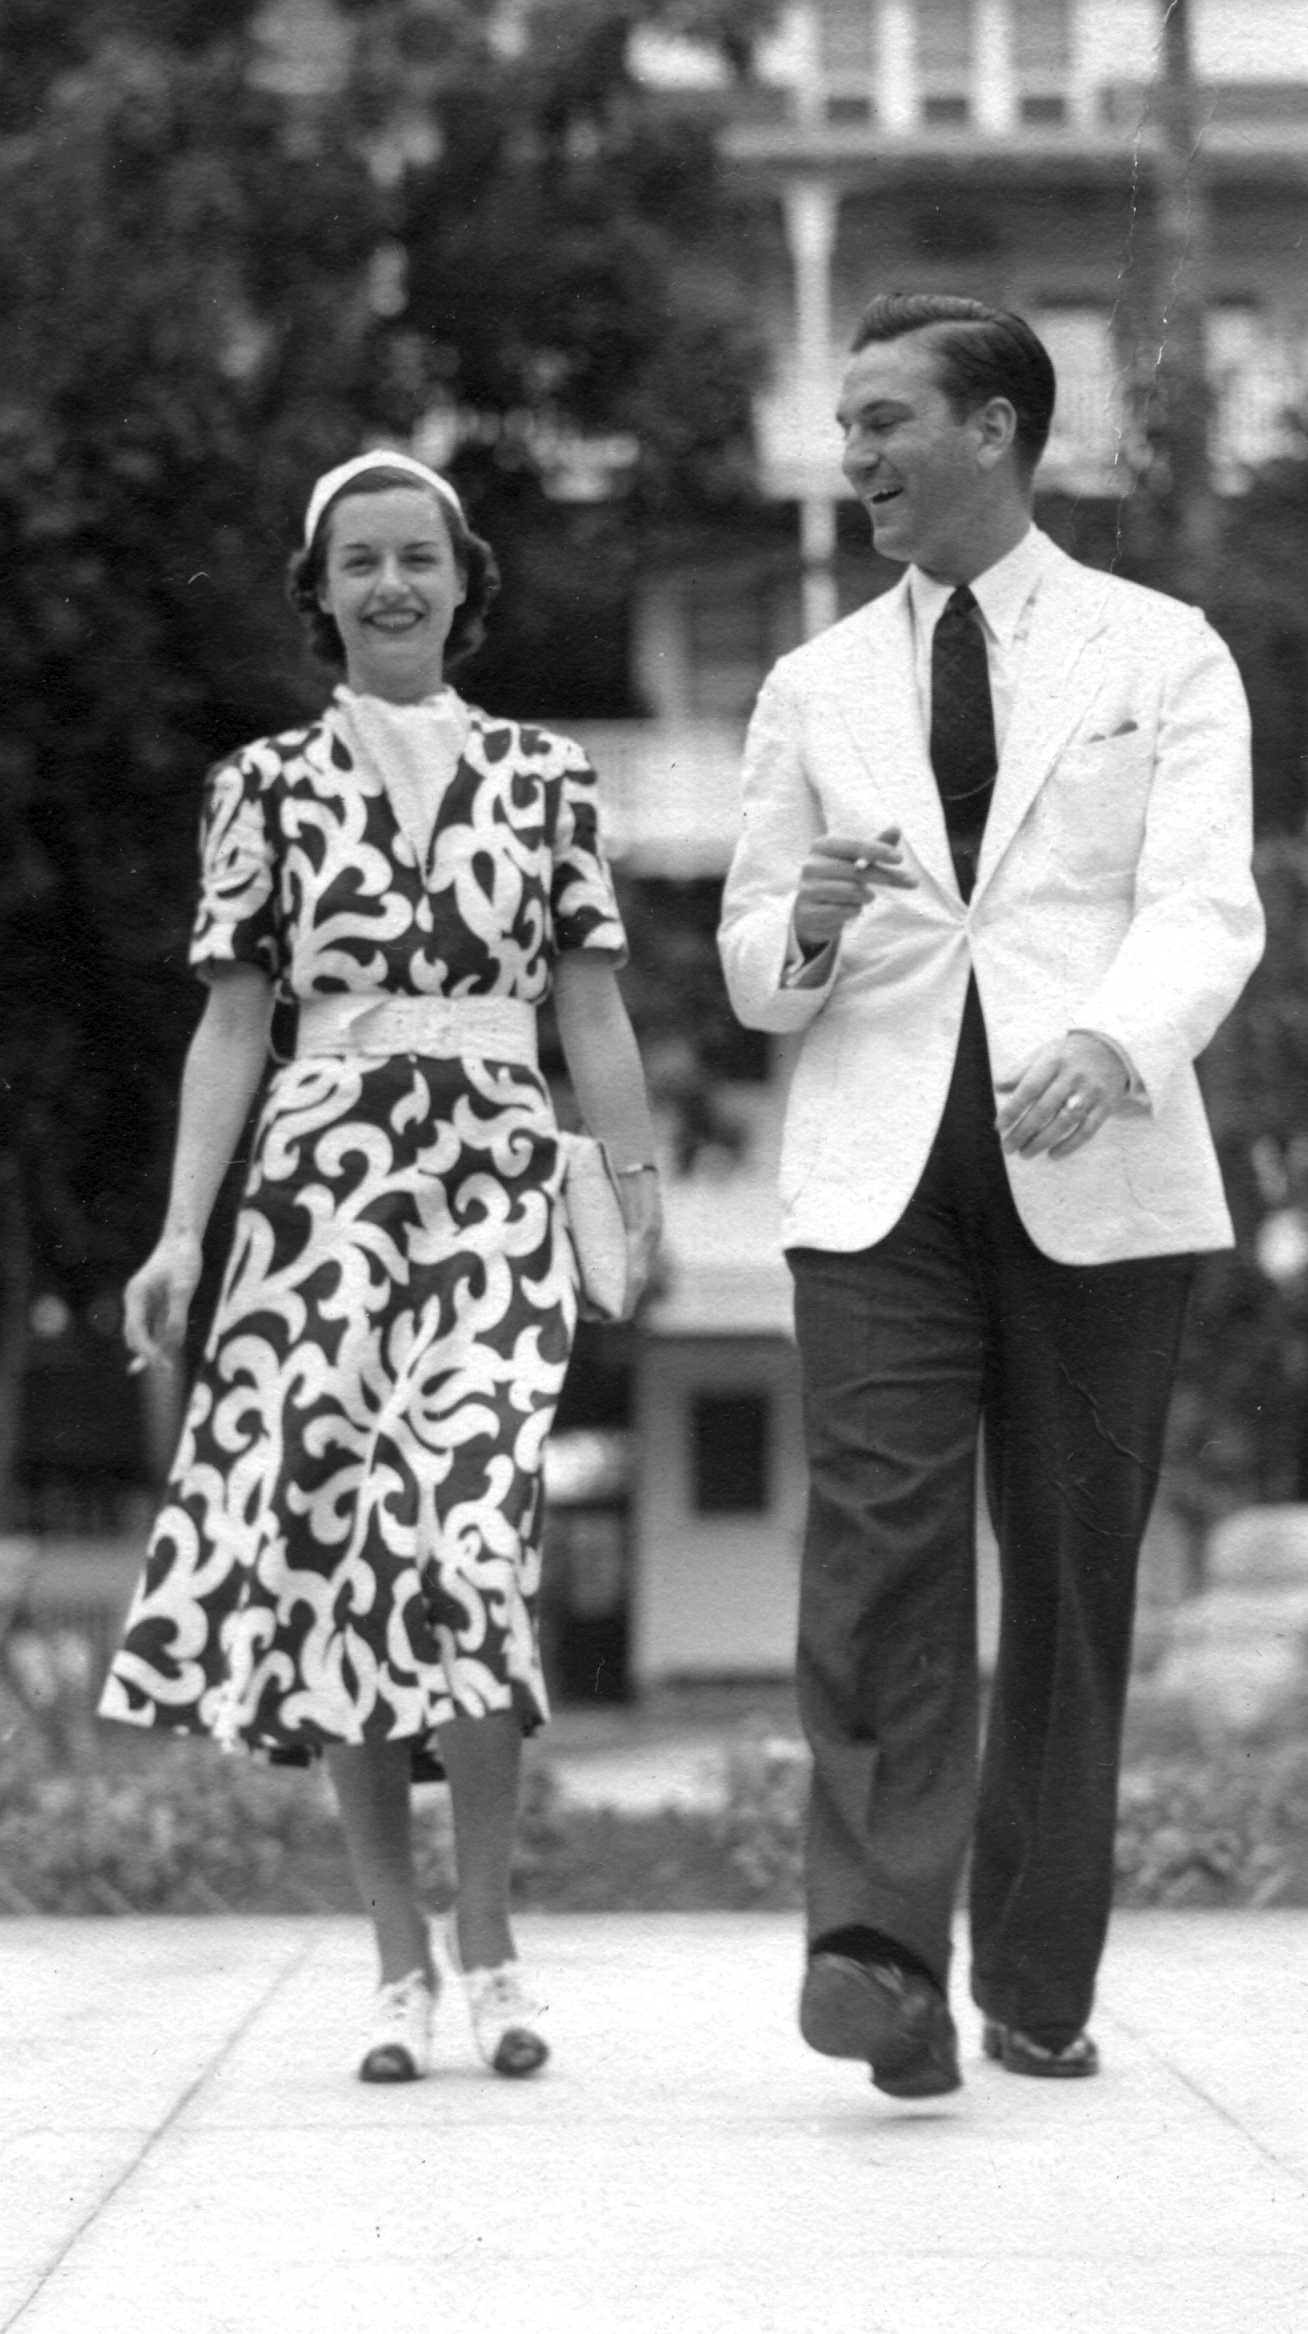 Minter and his wife Lisa Porter